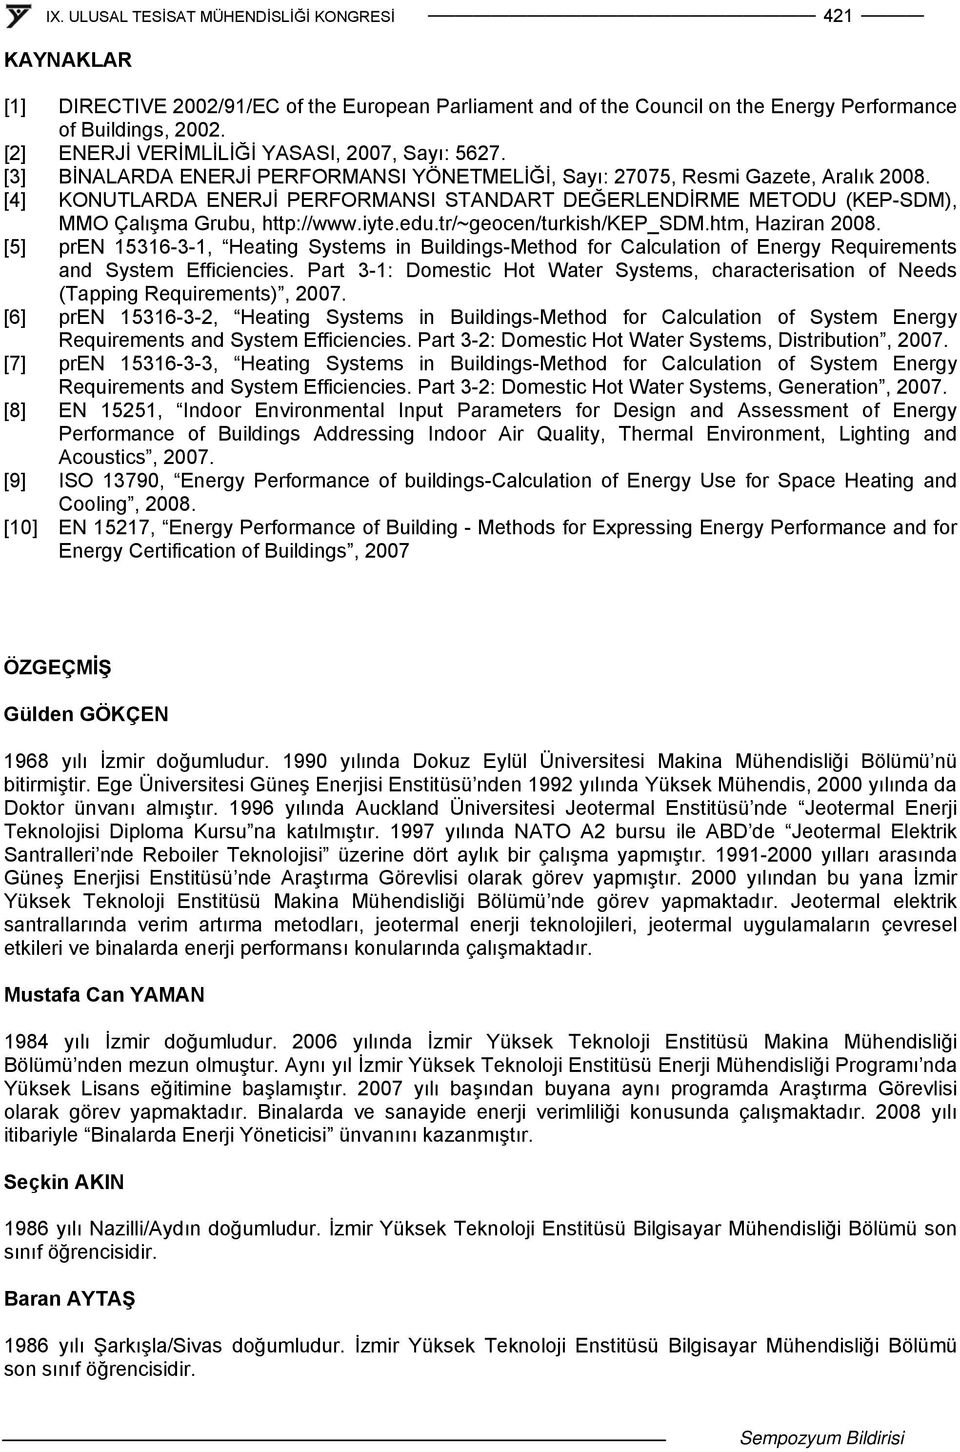 tr/~geocen/turkish/kep_sdm.htm, Haziran 2008. [5] pren 15316-3-1, Heating Systems in Buildings-Method for Calculation of Energy Requirements and System Efficiencies.